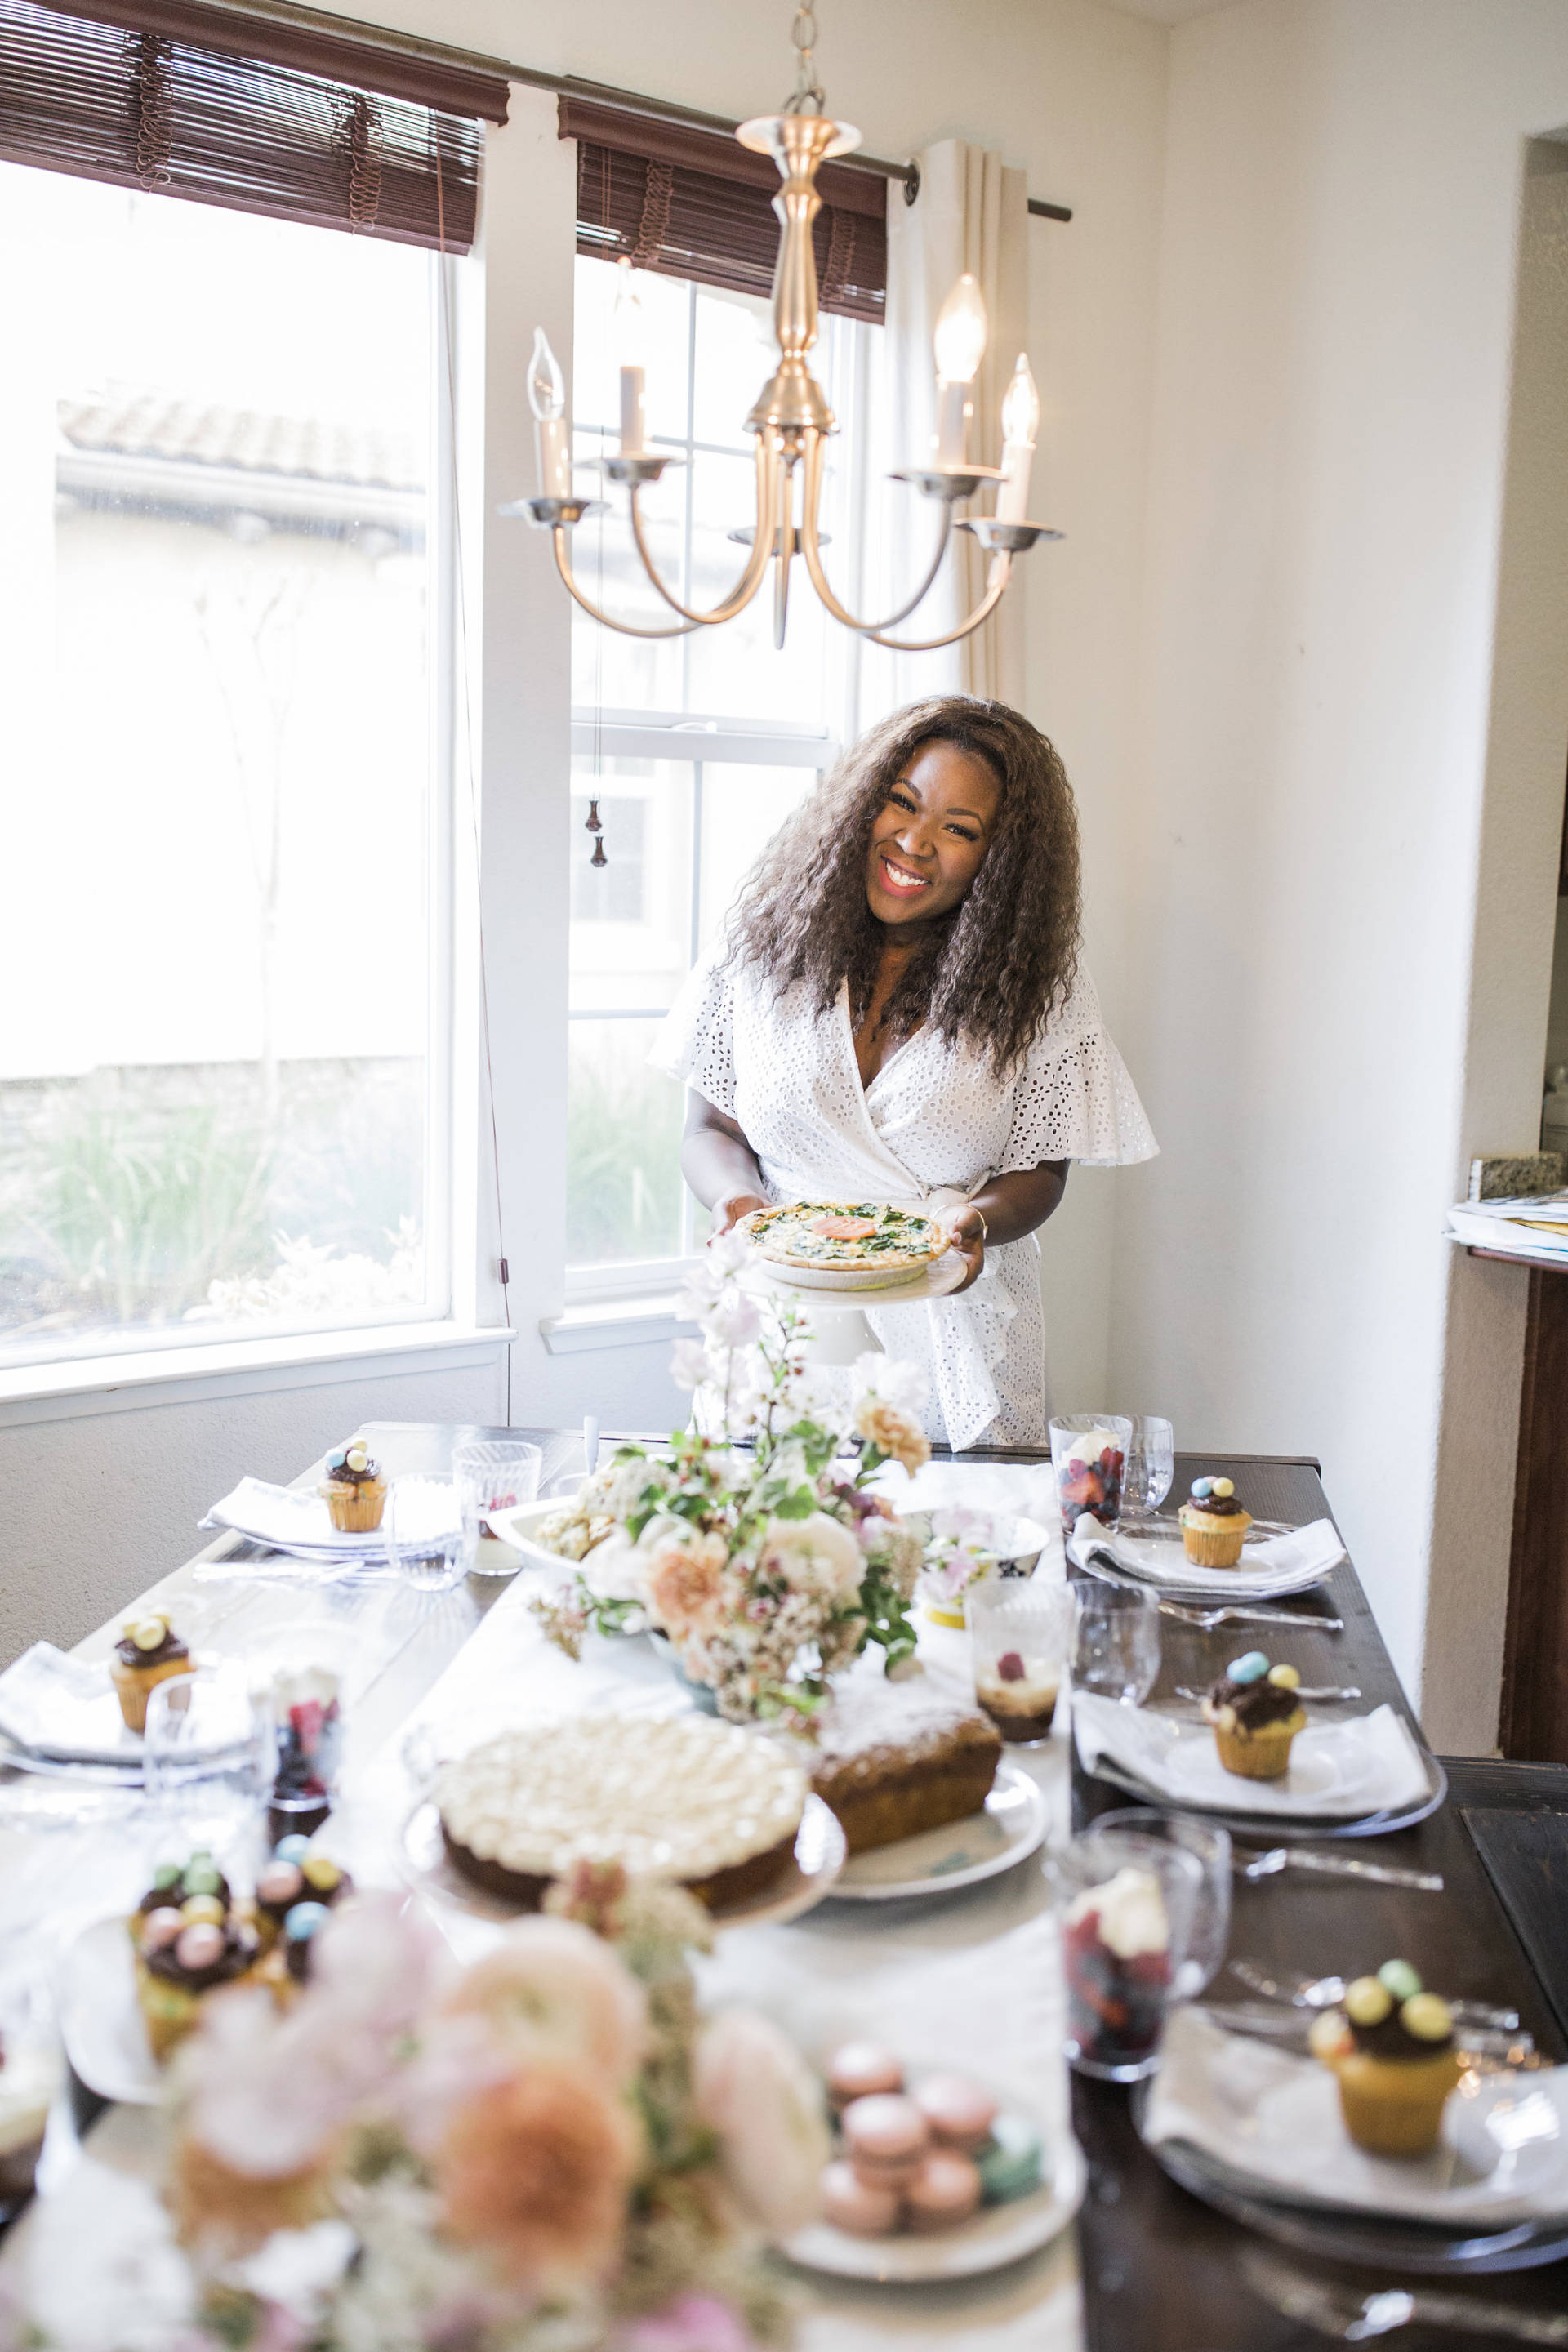 Hosting is always fun but cleaning up after never is! This year I'm so excited that we have tableware byChinet® Cut Crystal® that is going to make cleanup easy!